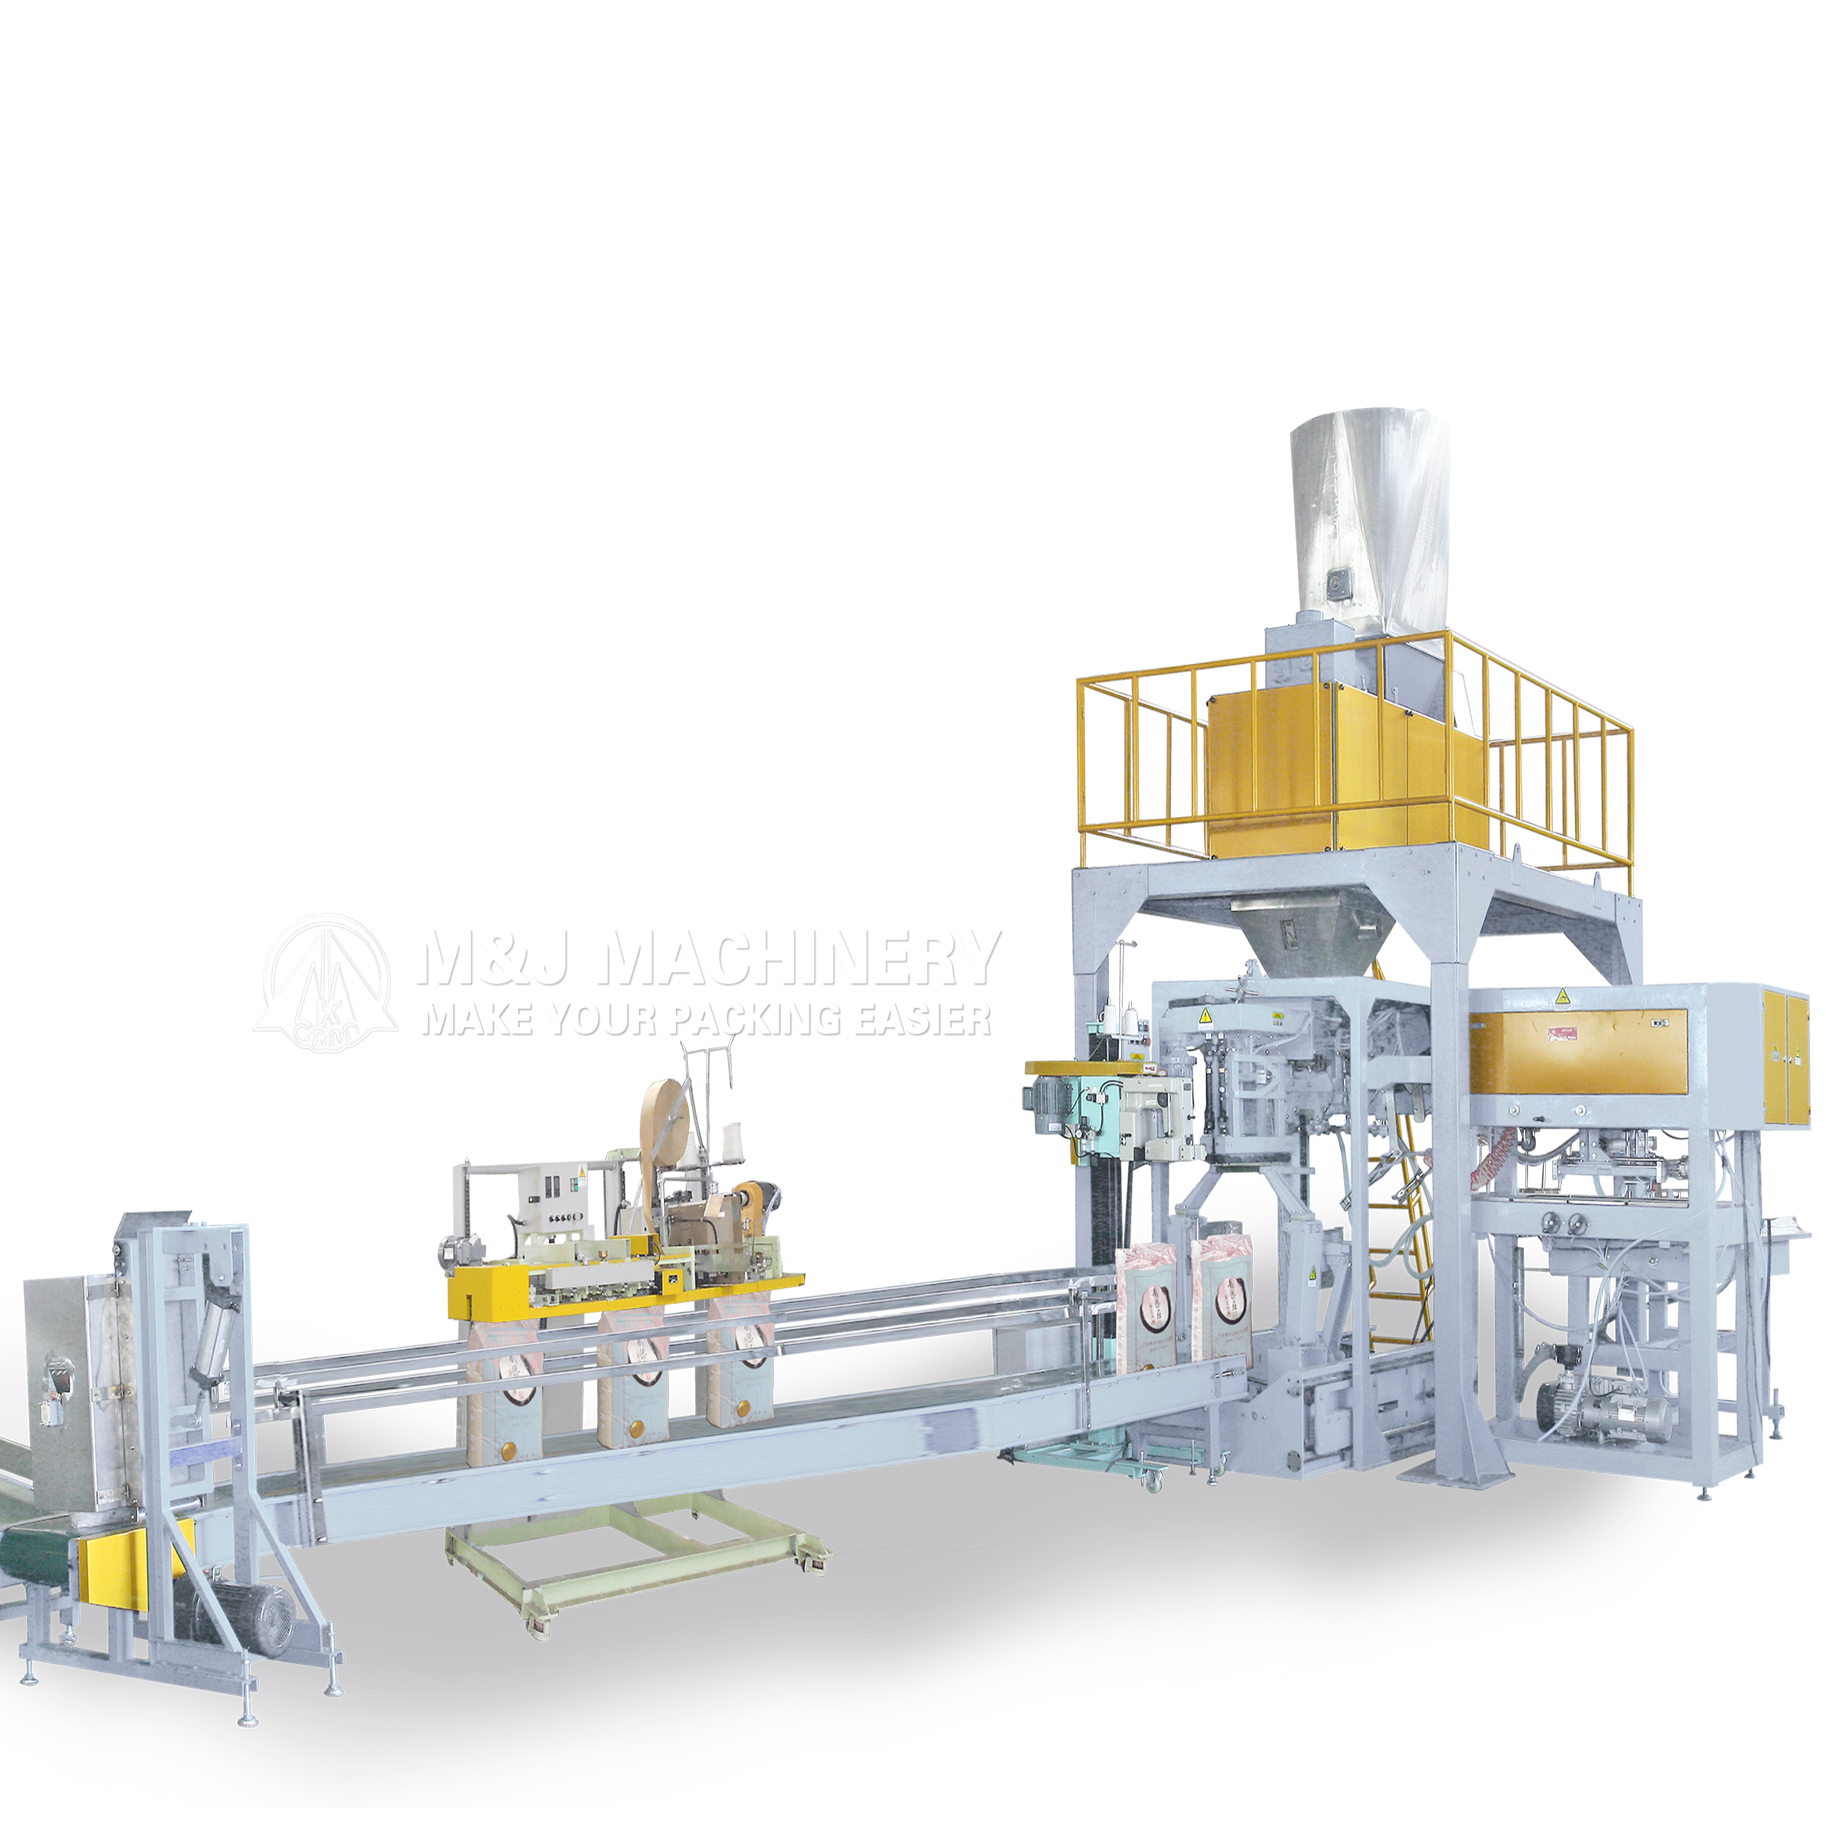 Compelletely automatic bagging machine